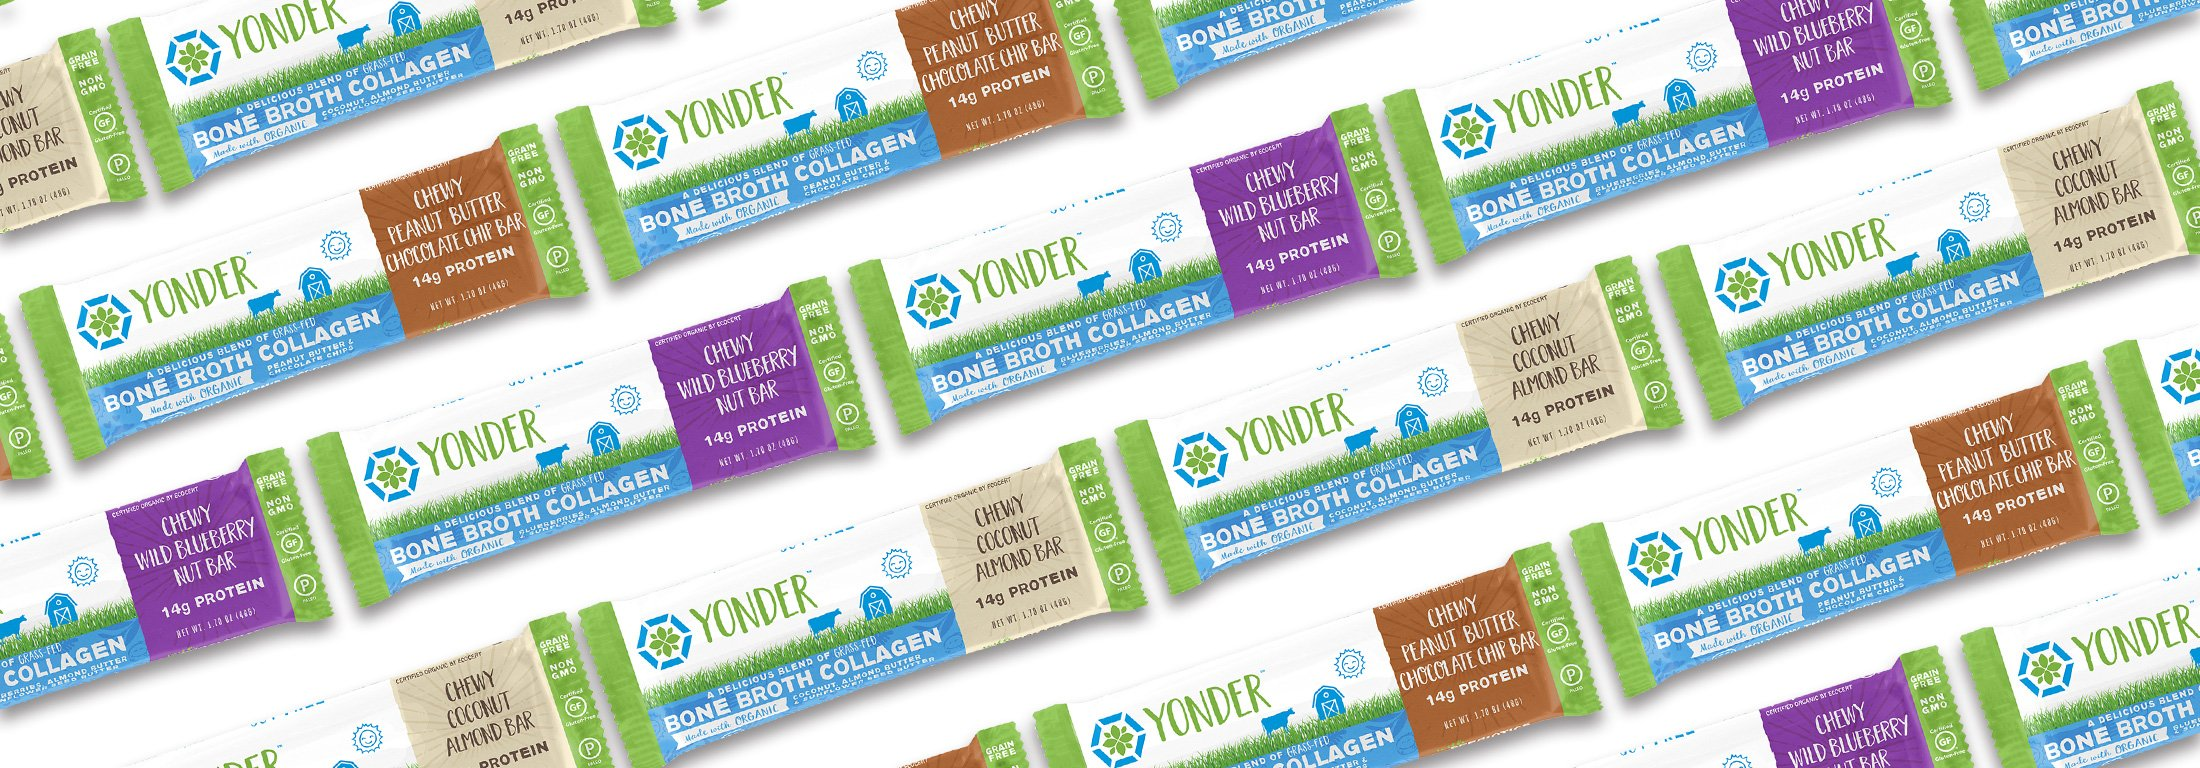 Yonder Bone Broth Collagen Bars